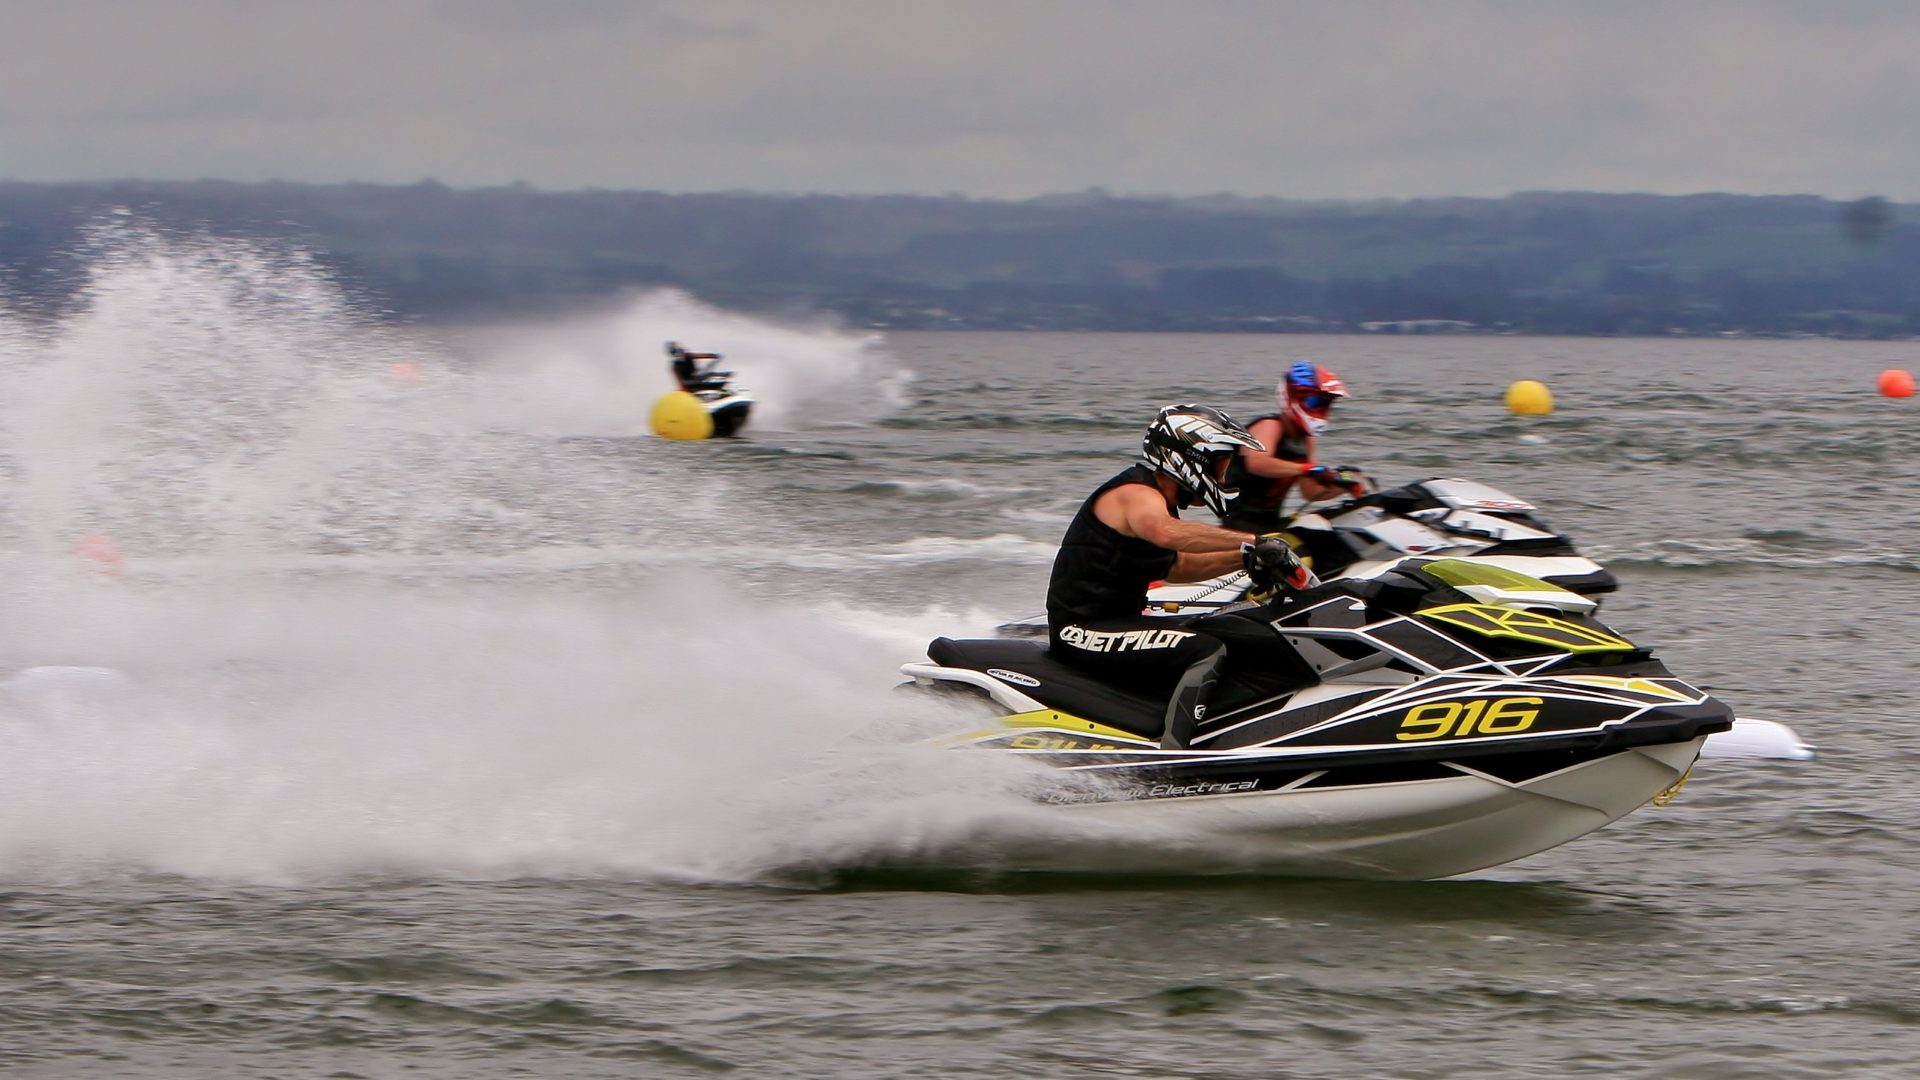 Jet Ski Racing Nz - Page 2 Of 3 - The Official Site Of Nz